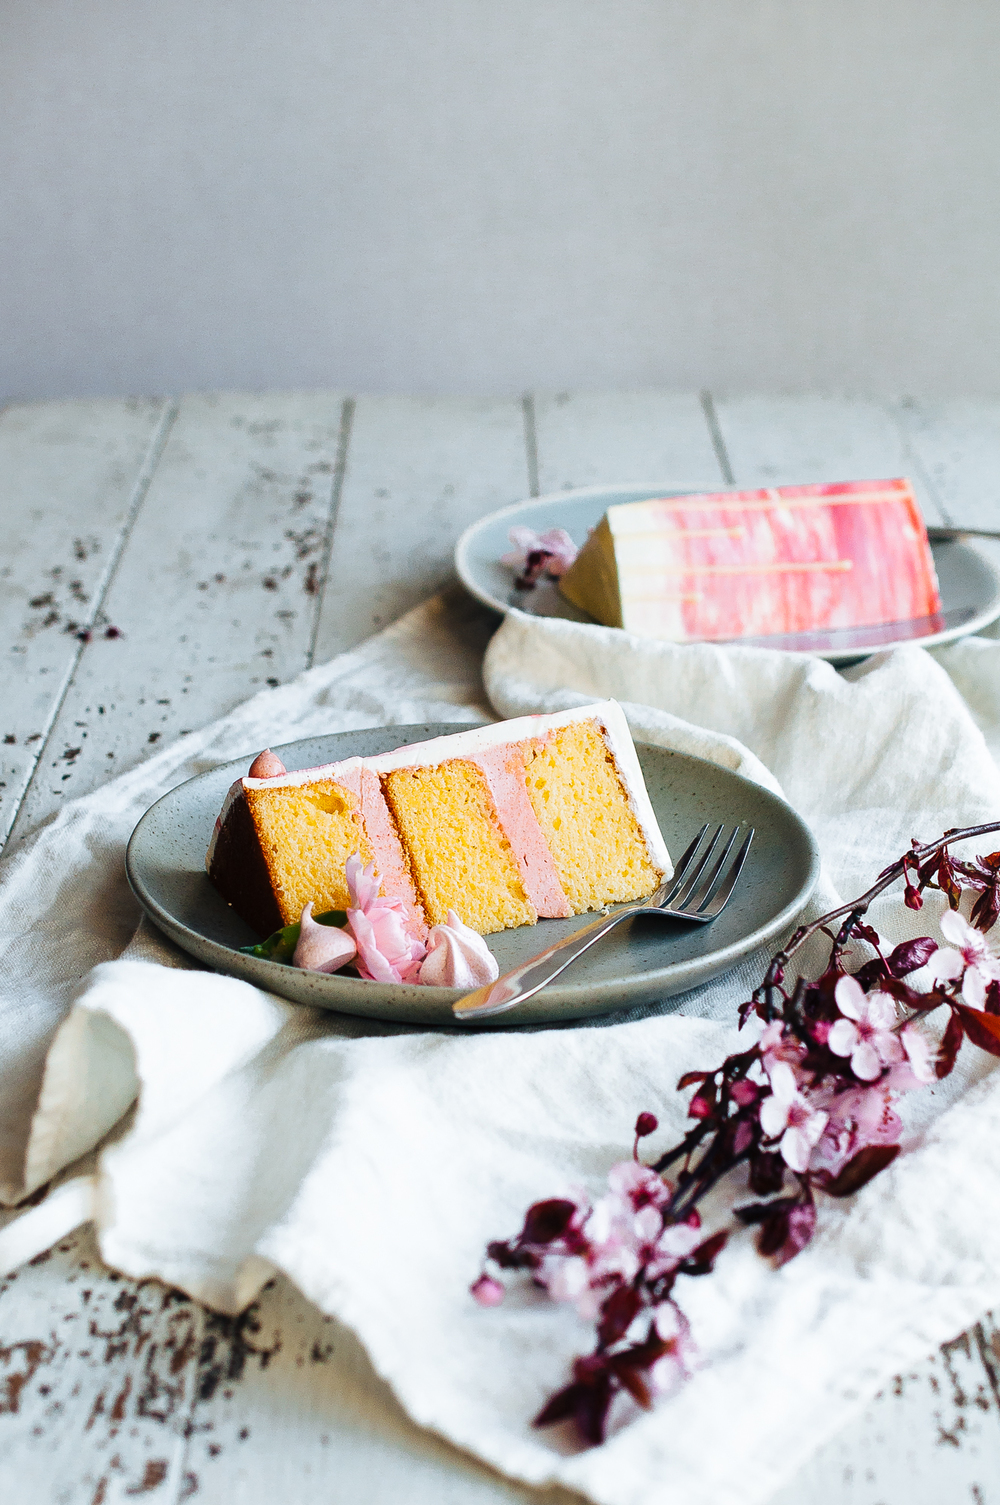 Strawberry and vanilla cake 23.jpg